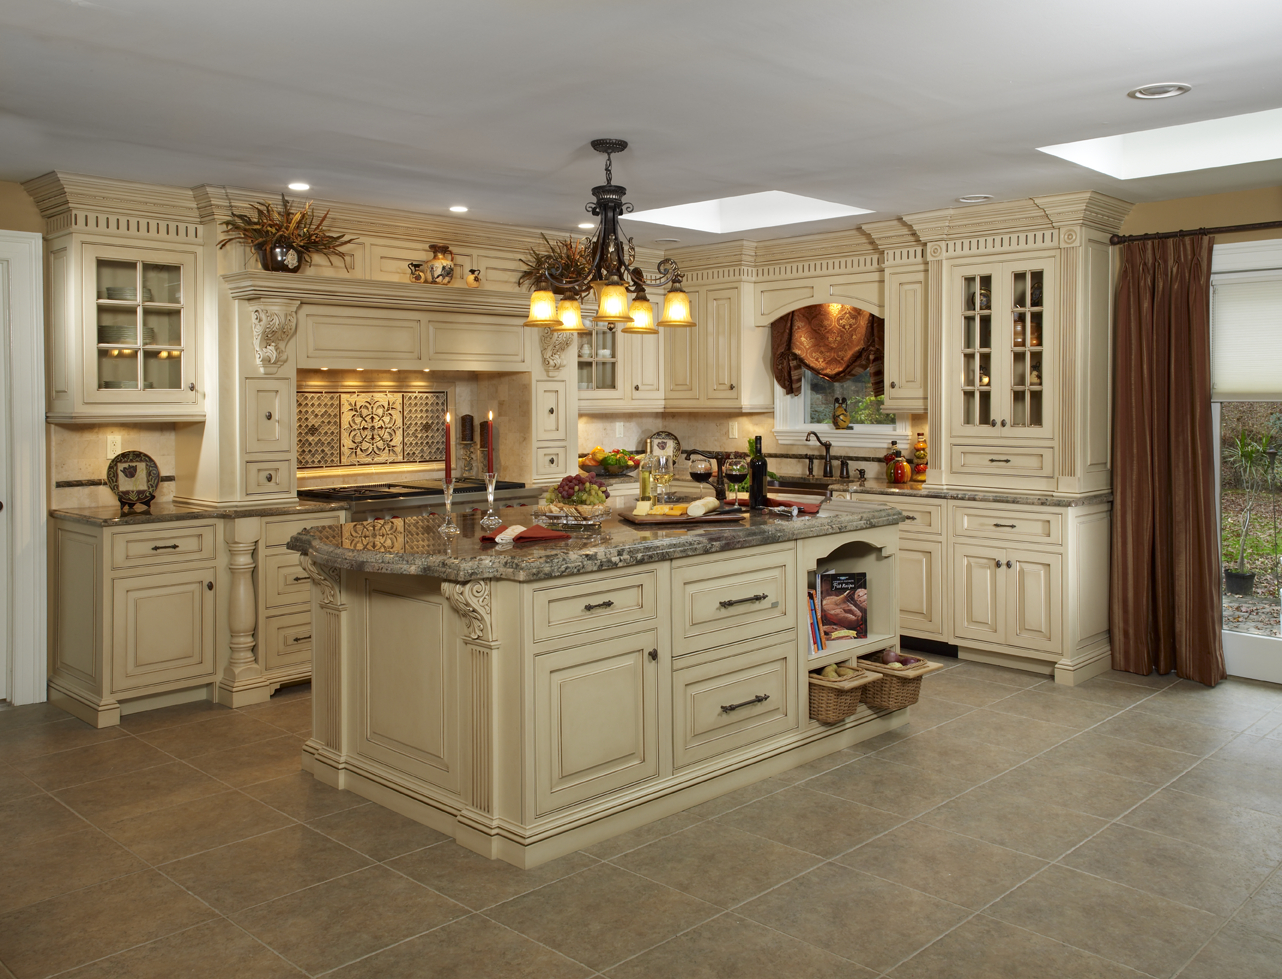 Interior Cambridge Kitchen Cabinets home